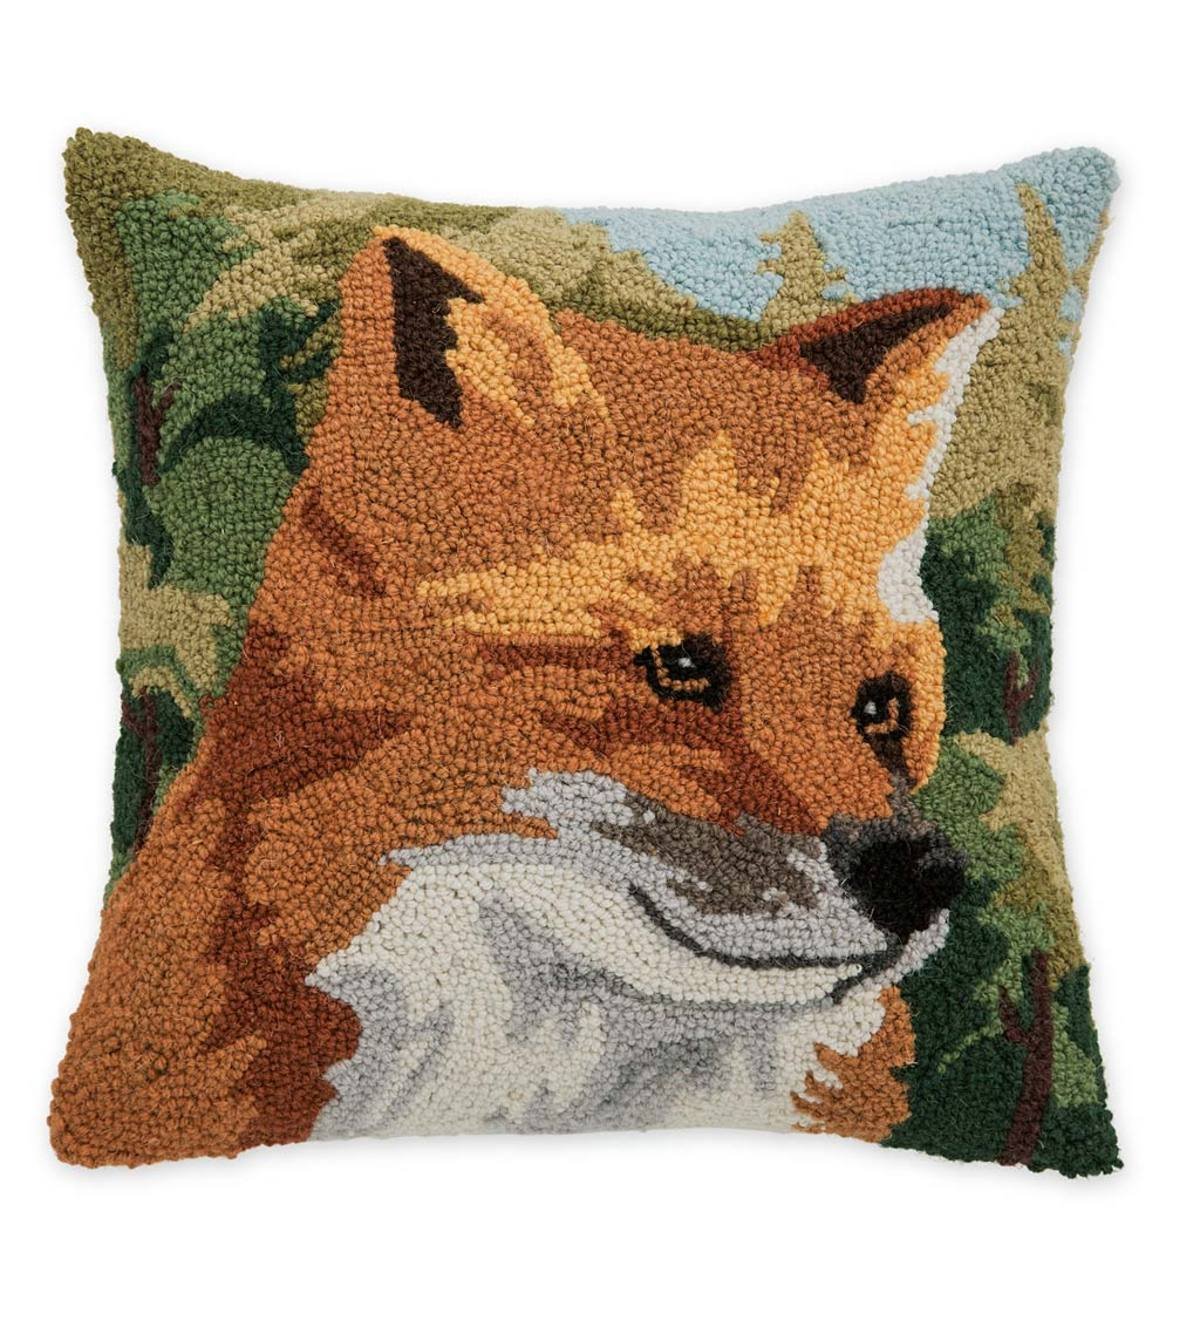 Fox Hand-Hooked Wool Throw Pillow